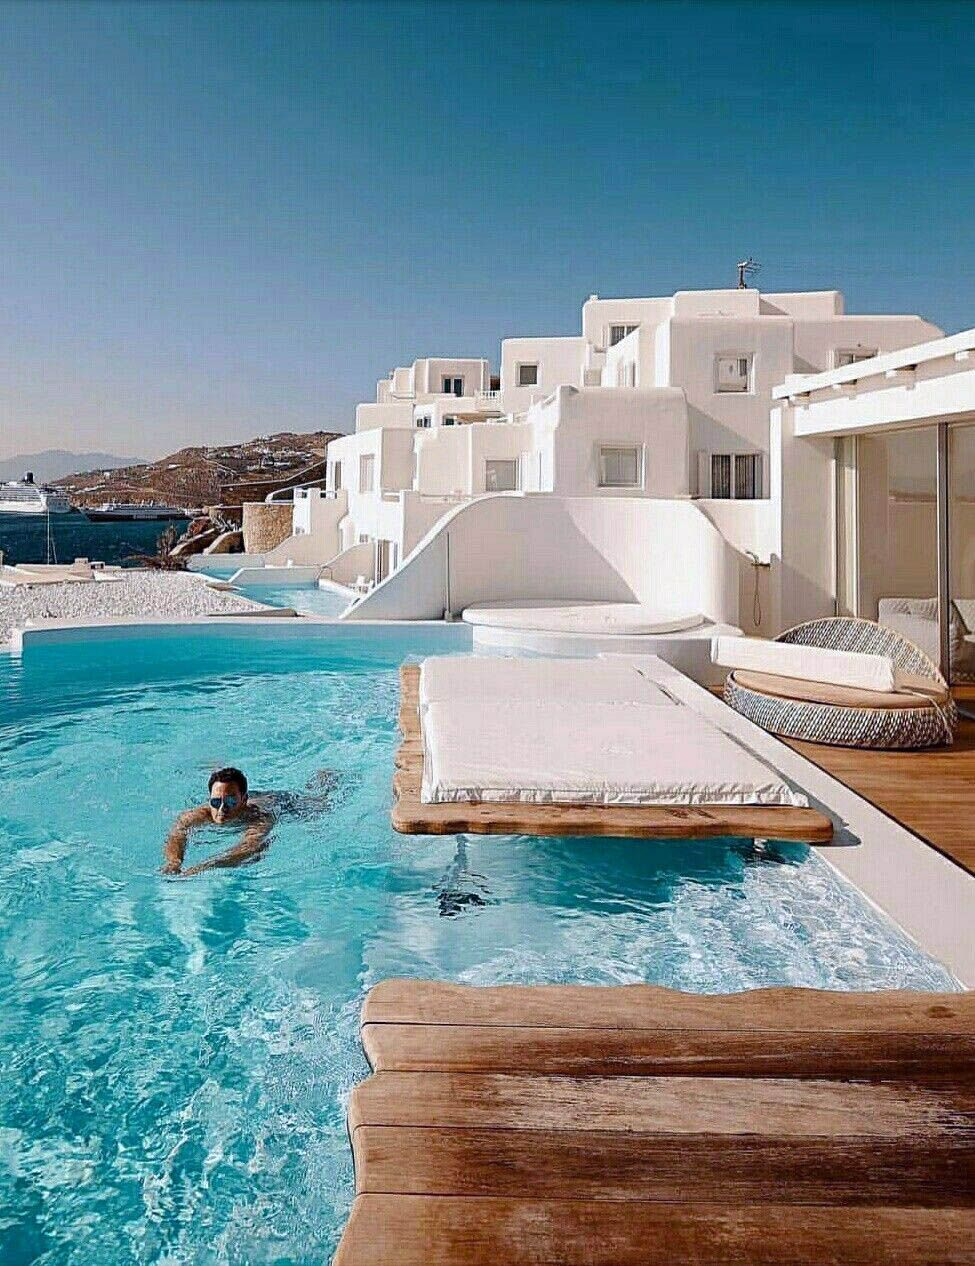 Places to visit in greek islands lombard exclusive on travelarize.com #visitgreece